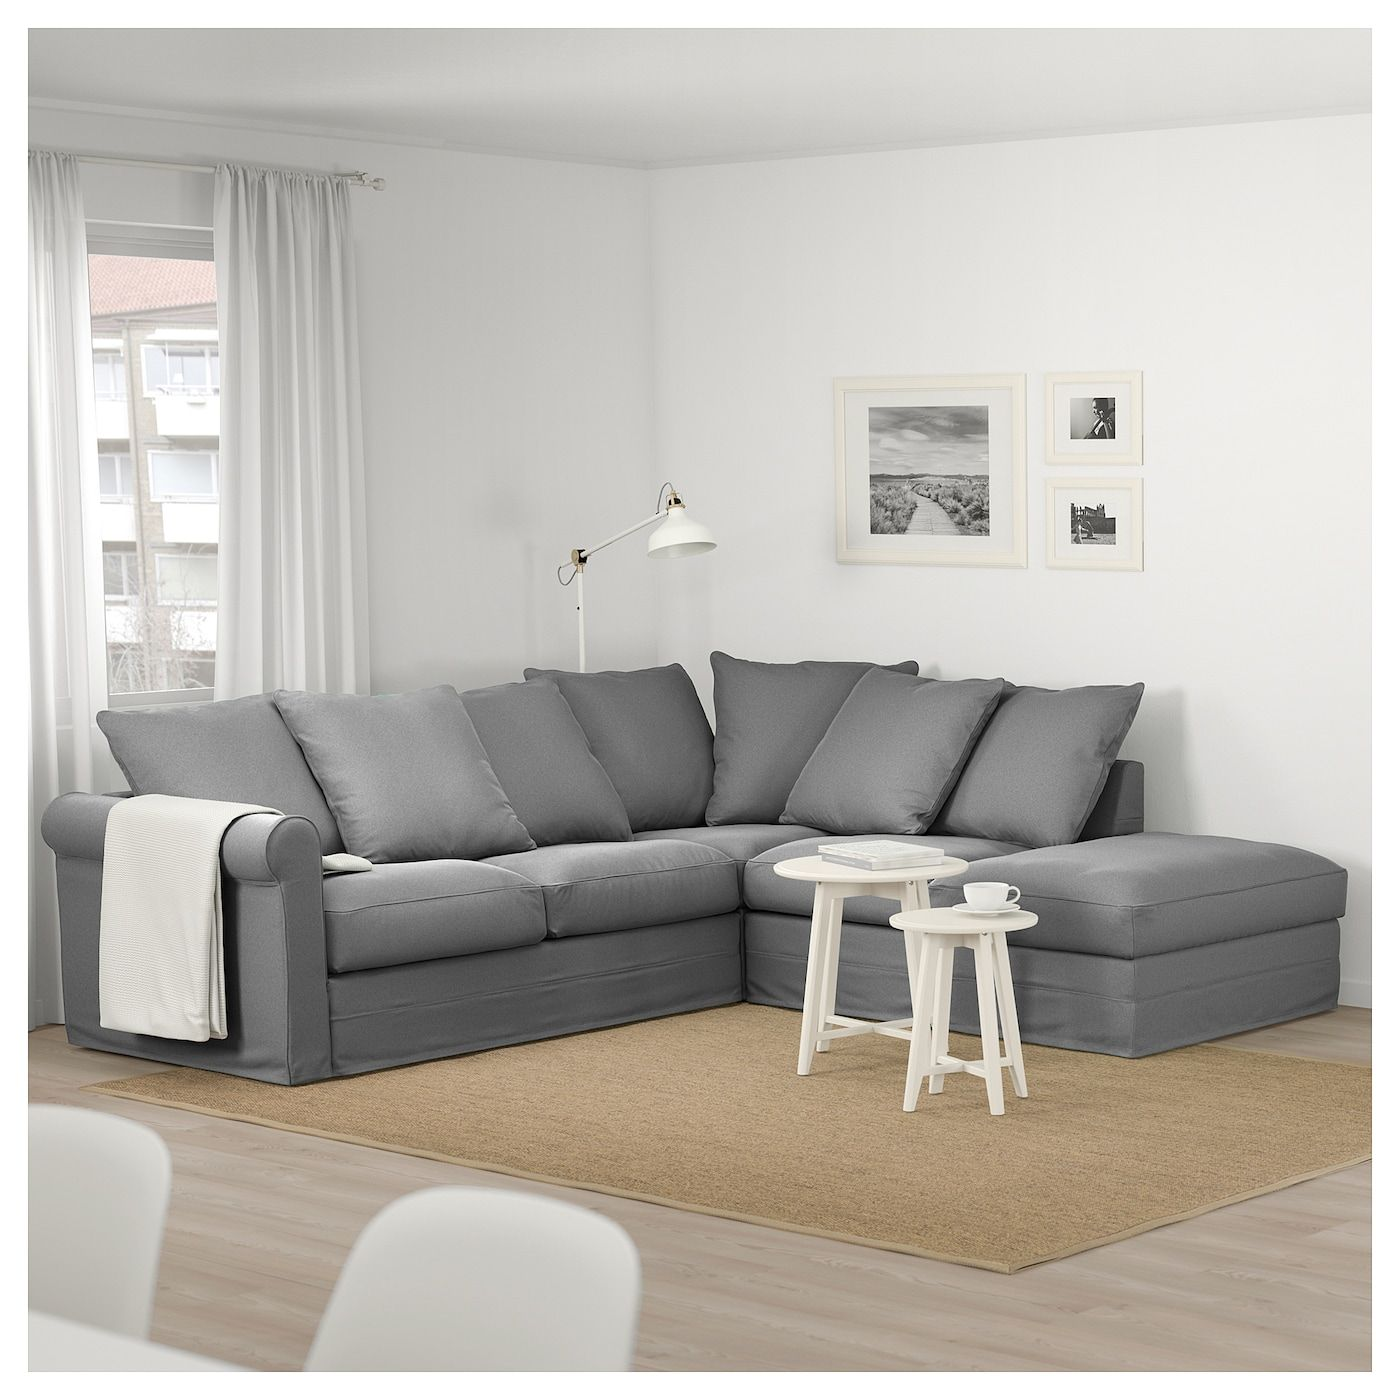 Gronlid Sectional 4 Seat Corner With Open End Ljungen Medium Gray Deep Seat Cushions Sectional Corner Sofa